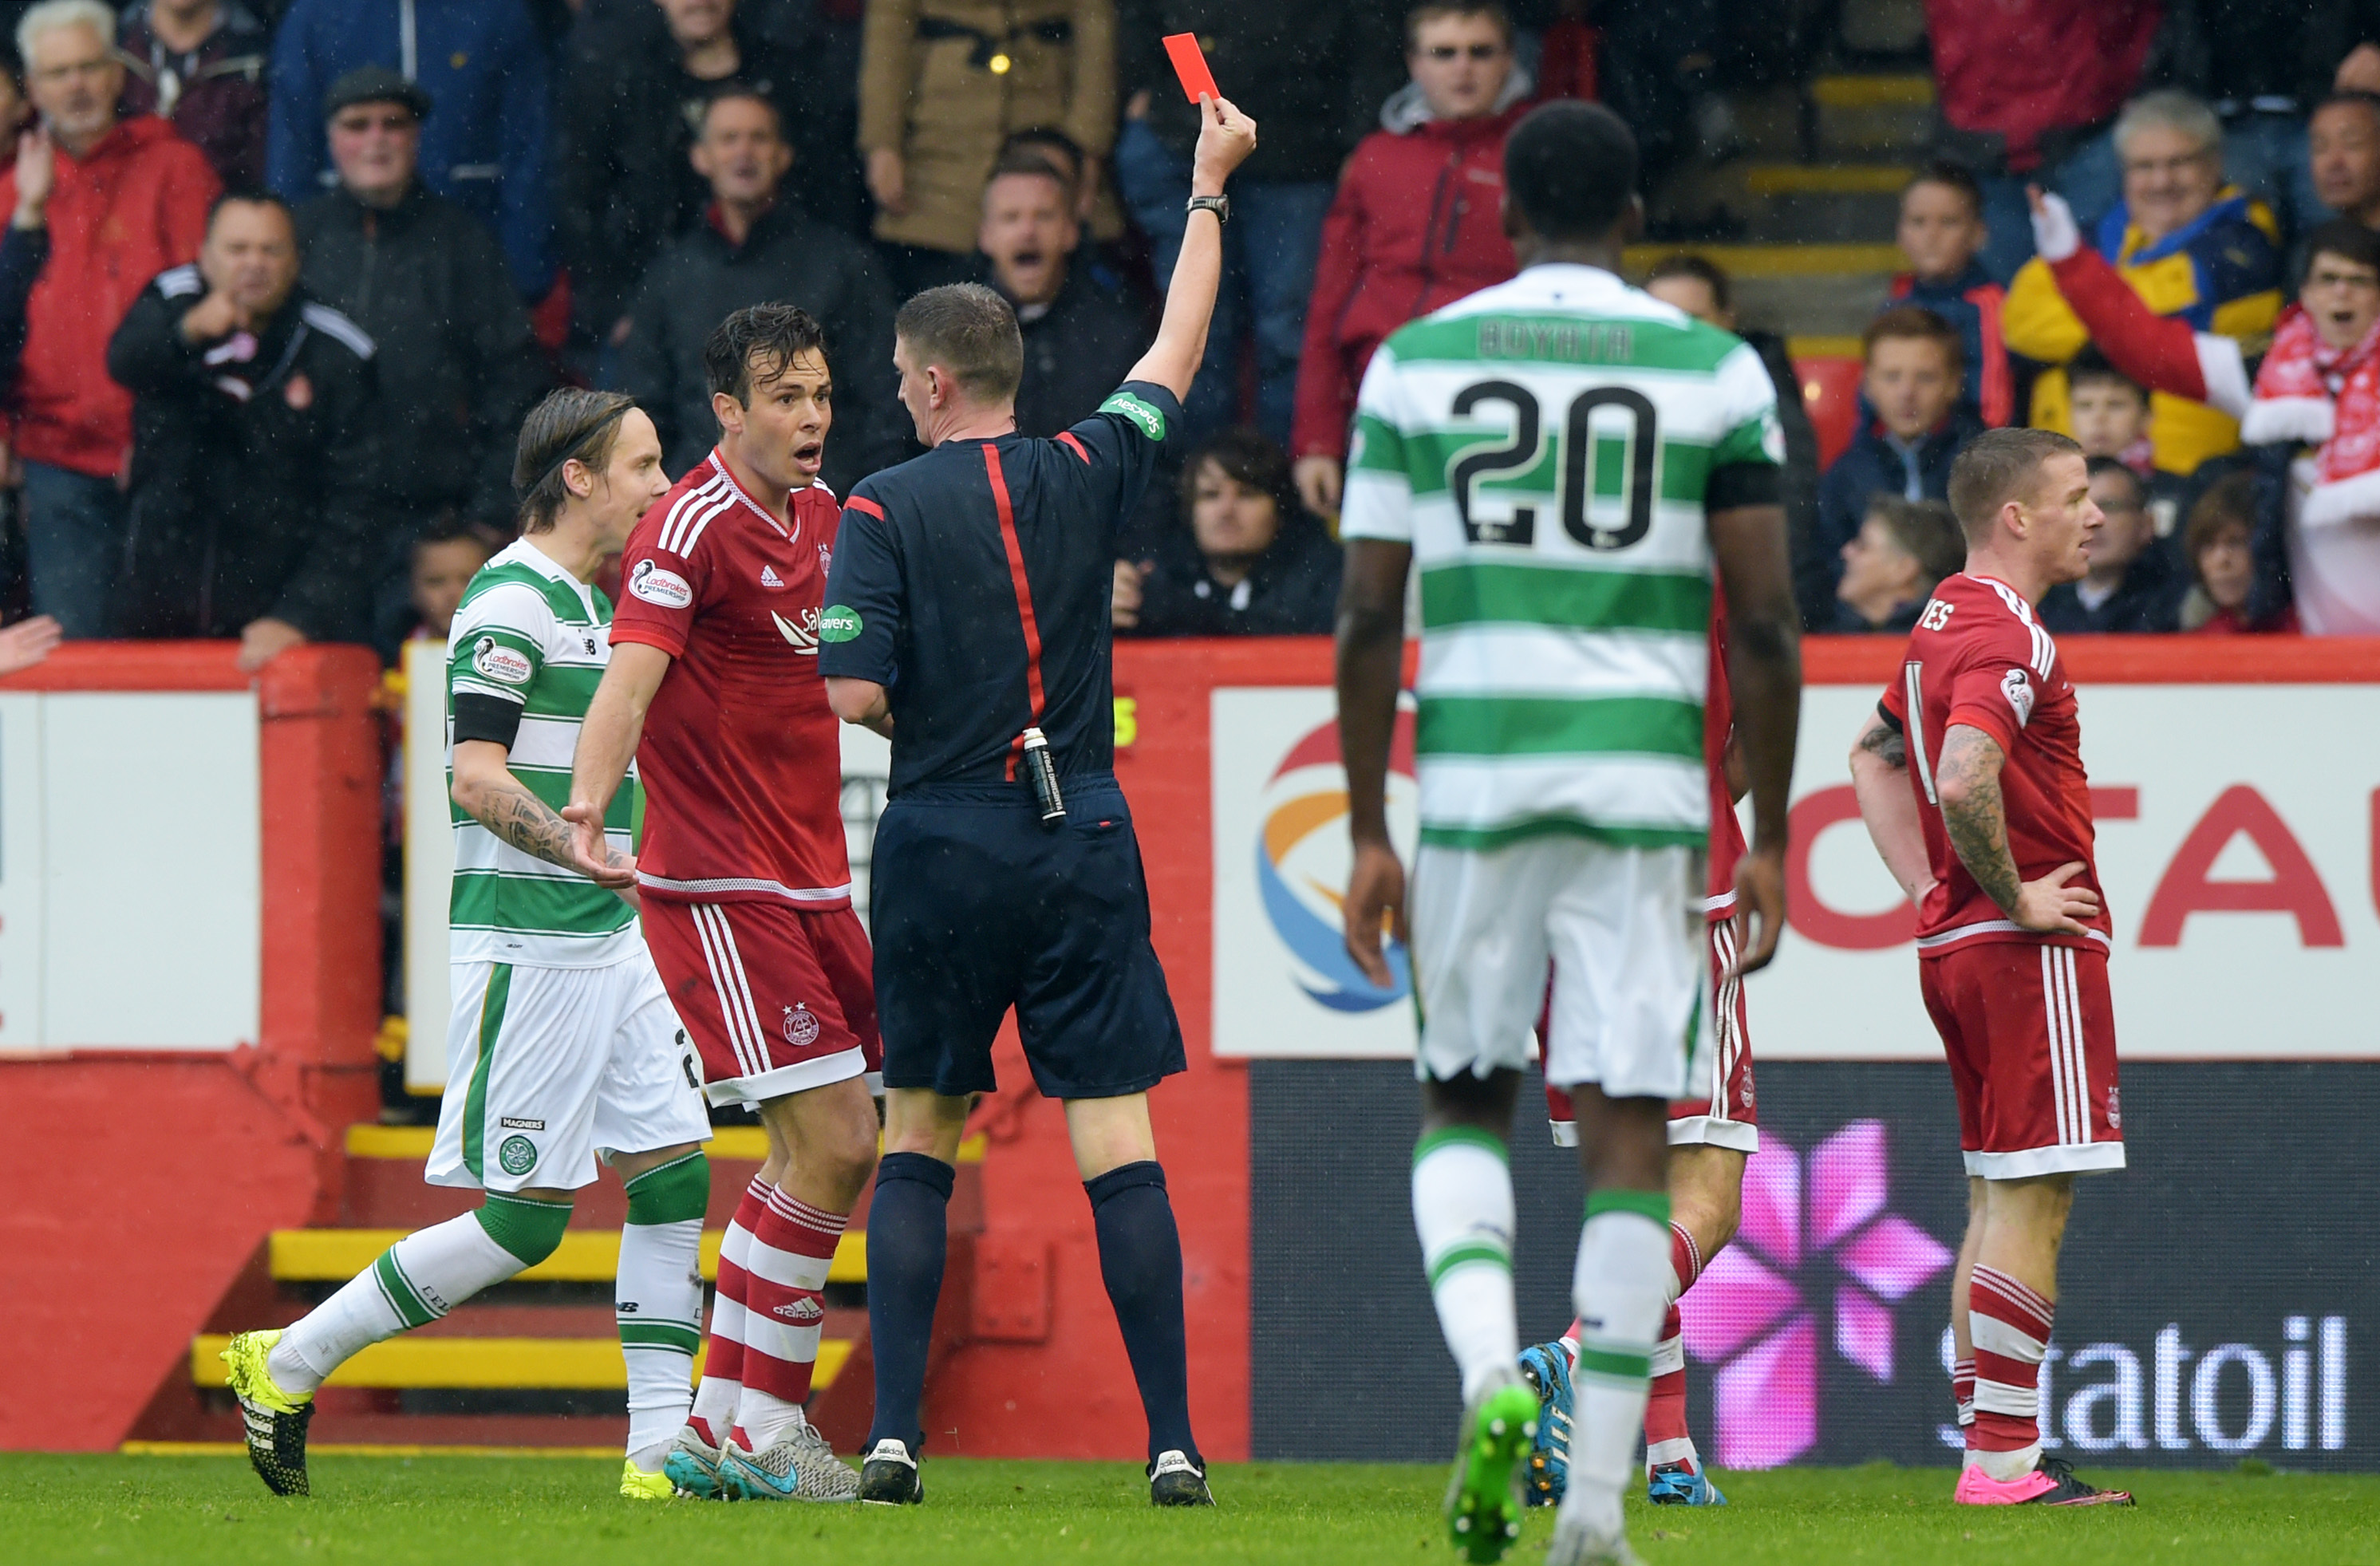 Aberdeen's Jonny Hayes (right) is shown a red card